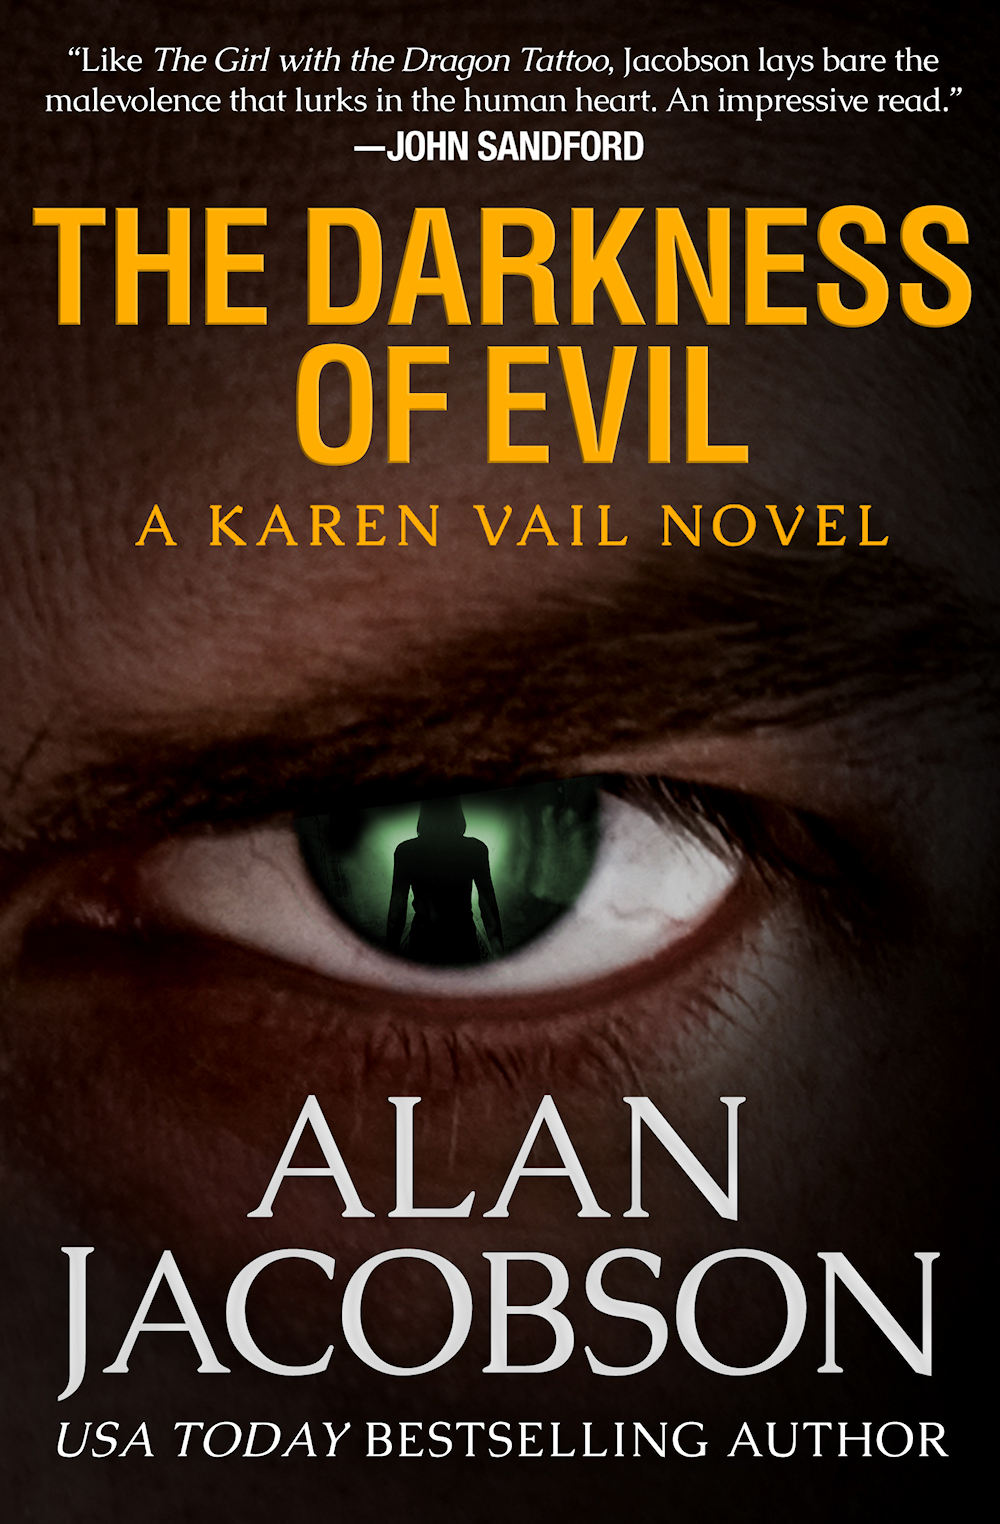 The Darkness of Evil | A new novel by Alan Jacobson